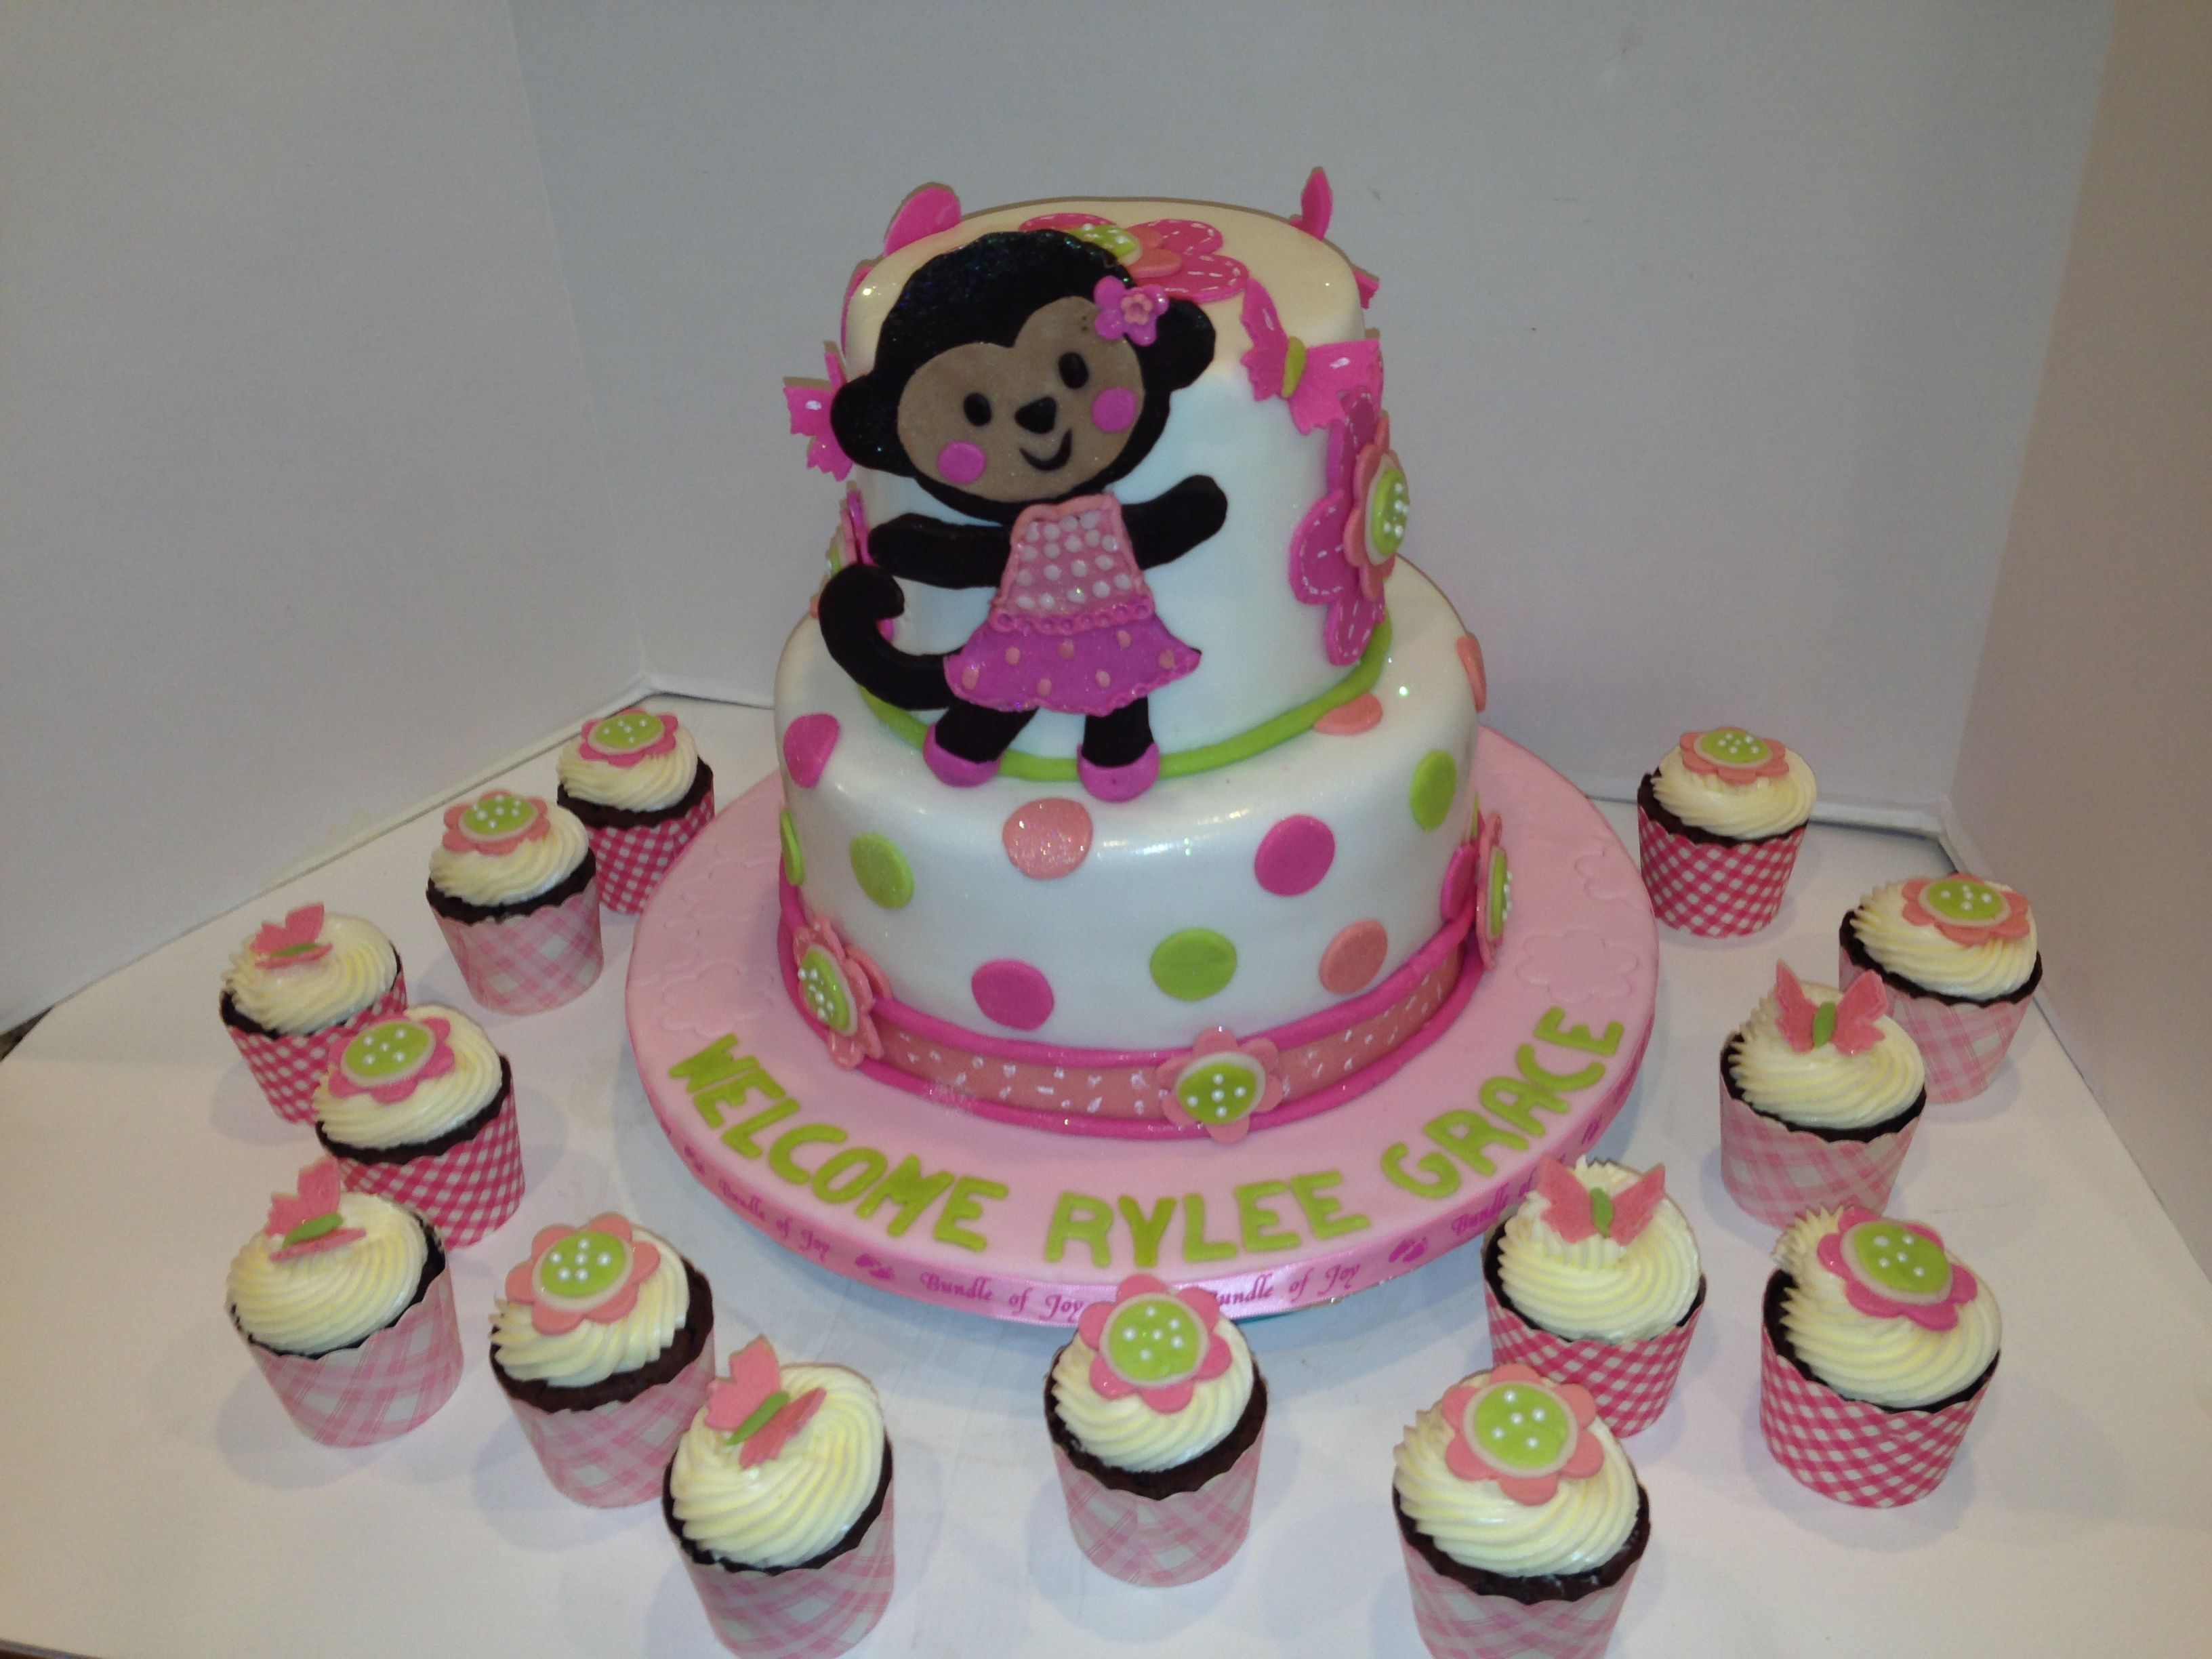 Baby Shower Decorations Girl Monkey Theme ~ Monkey baby shower cake and cupcakes all decorations are made